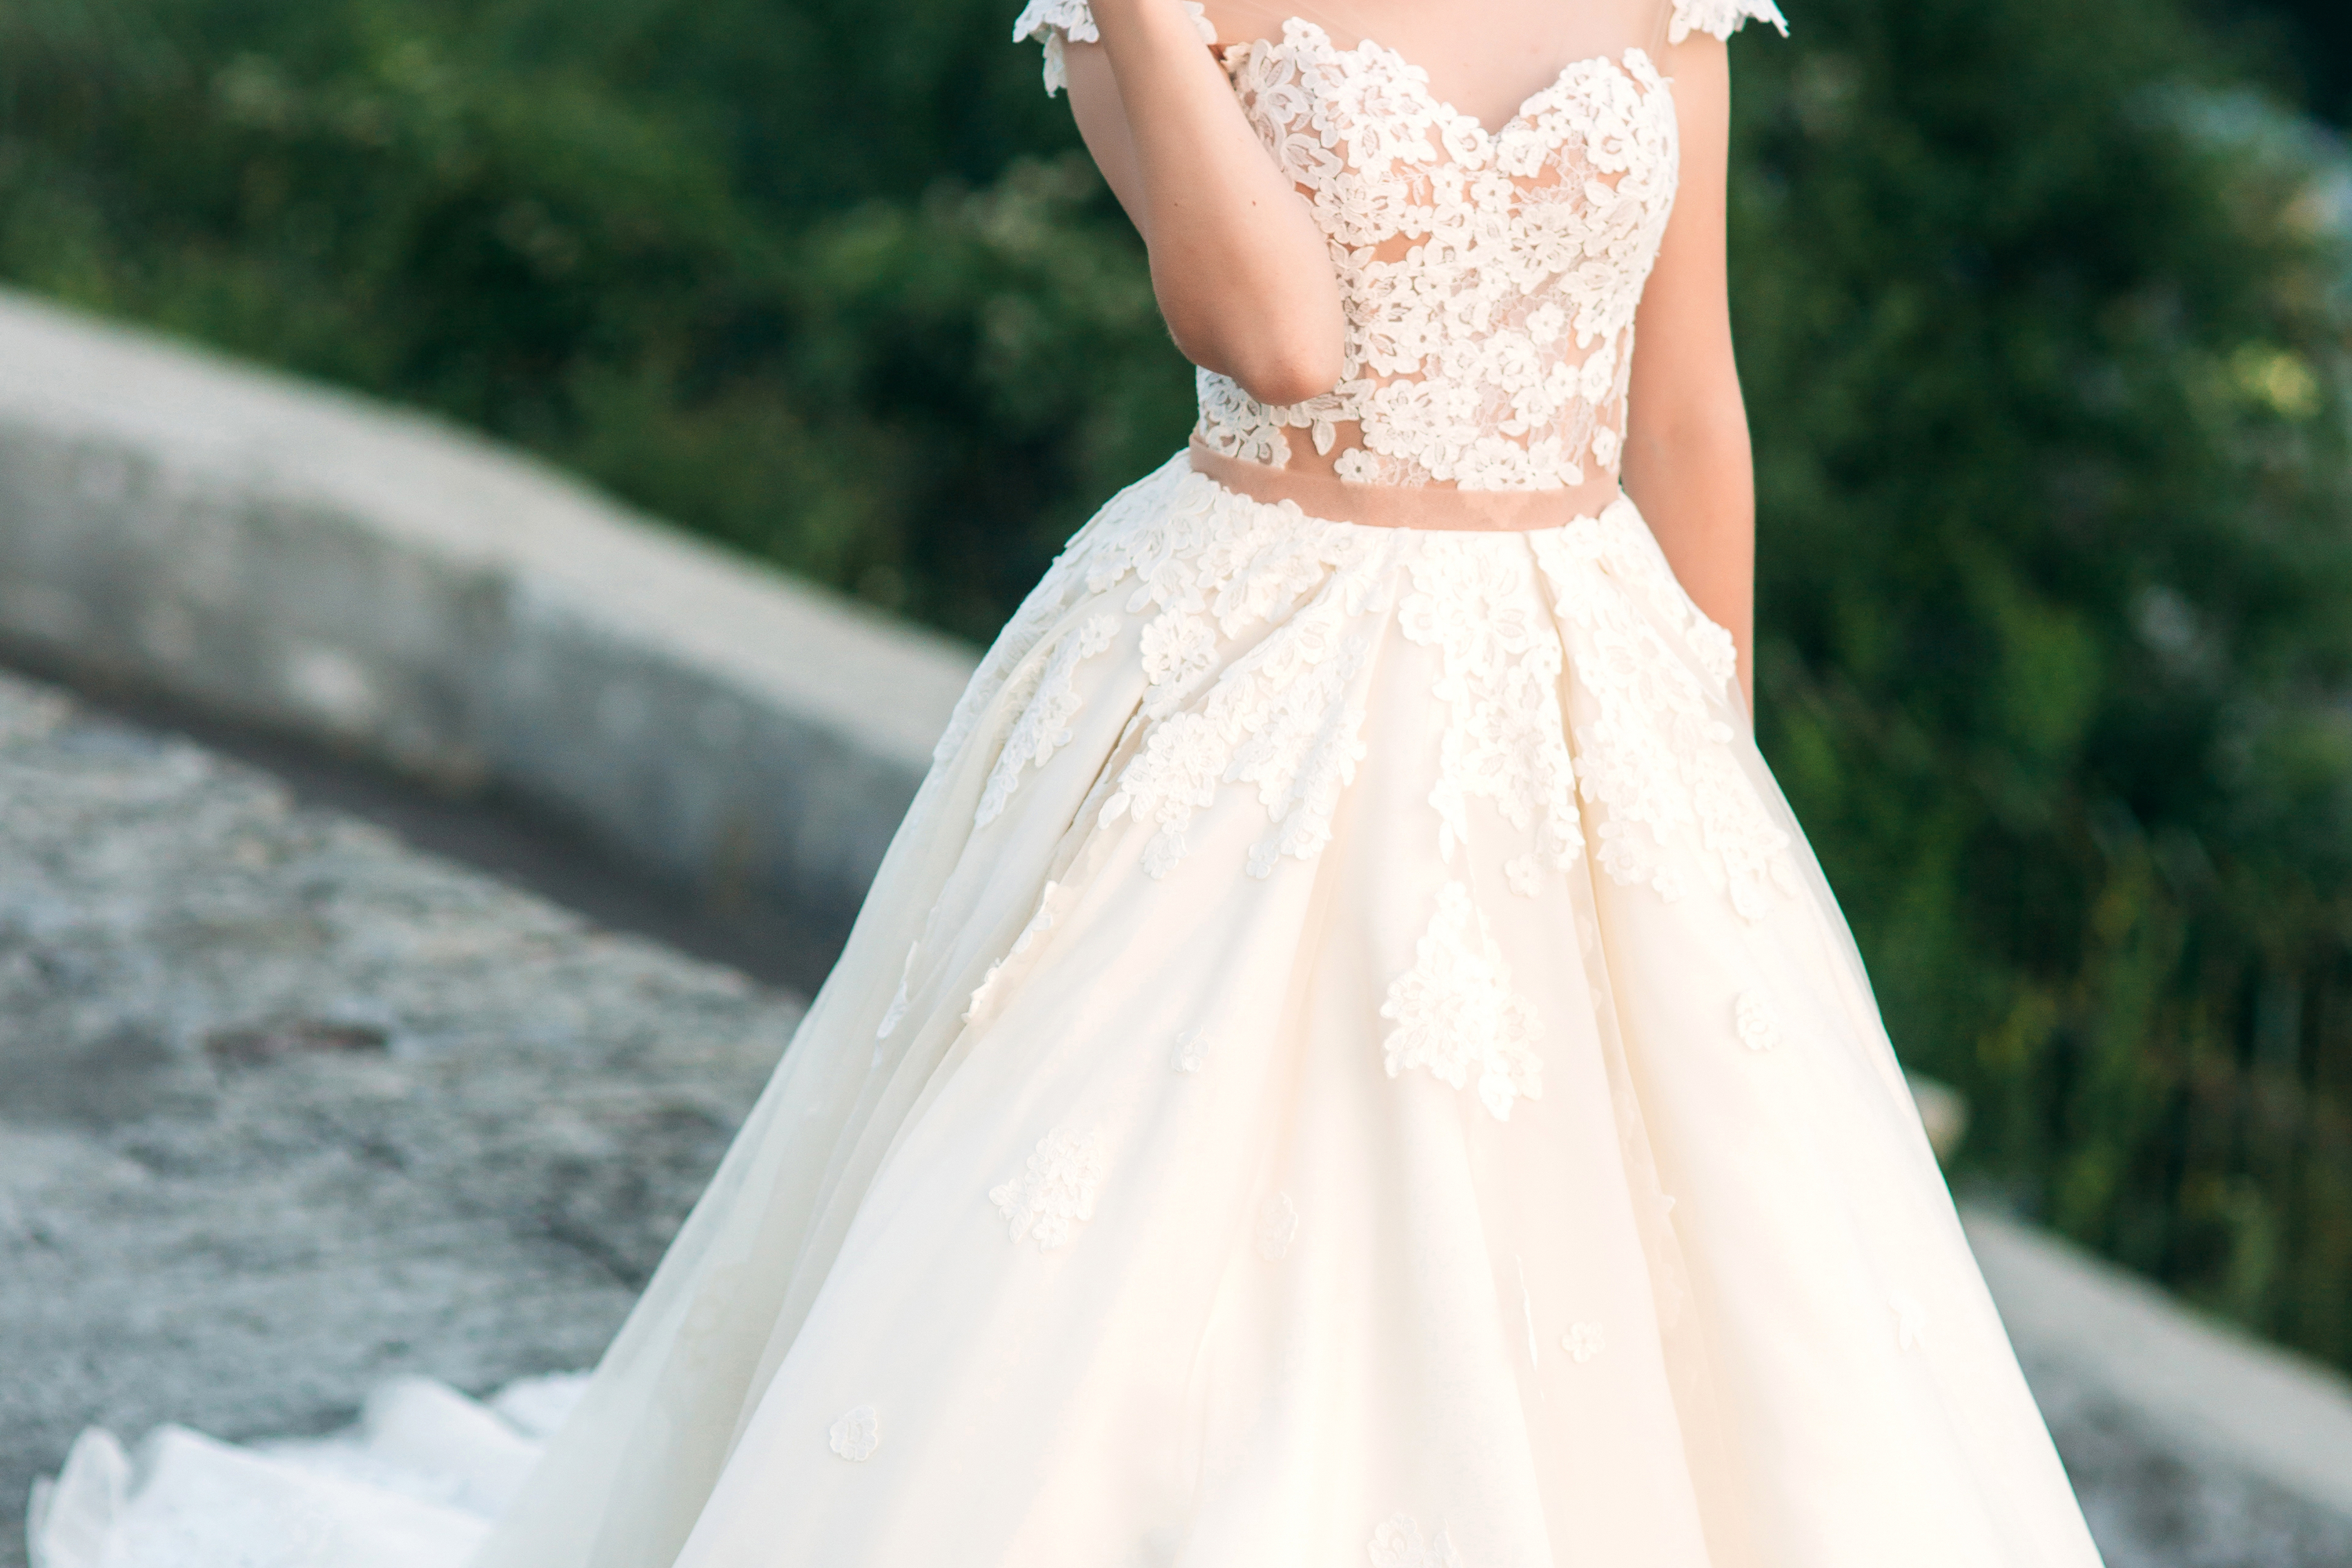 If you're planning a Spring wedding, make sure you look at Spring wedding dresses! A ball gown is always a good idea and will absolutely gorgeous against the Springtime flowers.